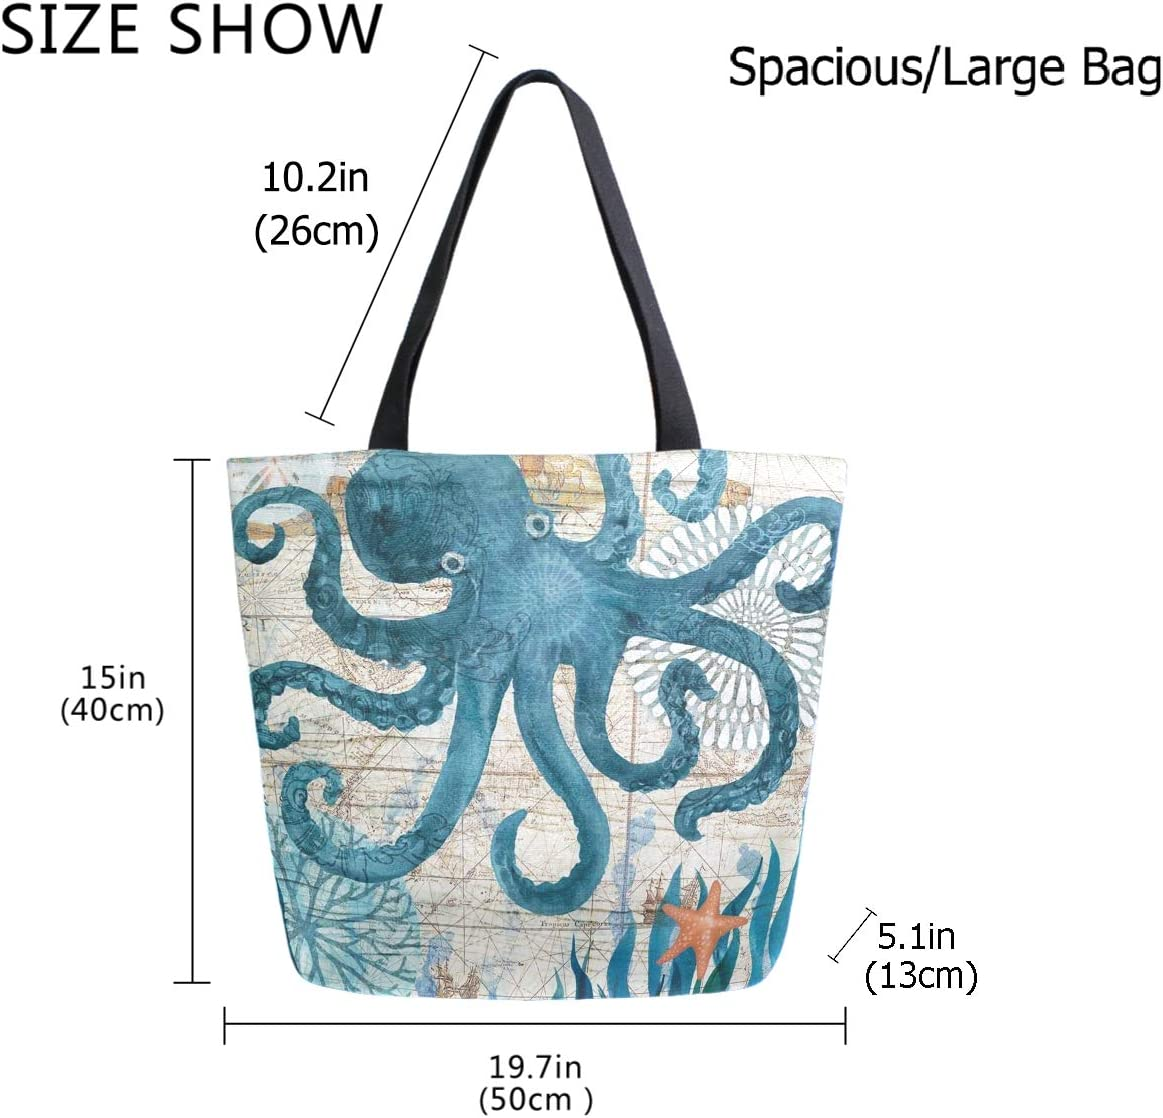 ZzWwR Stylish Rainbow Tie-dyed Extra Large Canvas Beach Travel Reusable Grocery Shopping Tote Bag Portable Storage HandBag